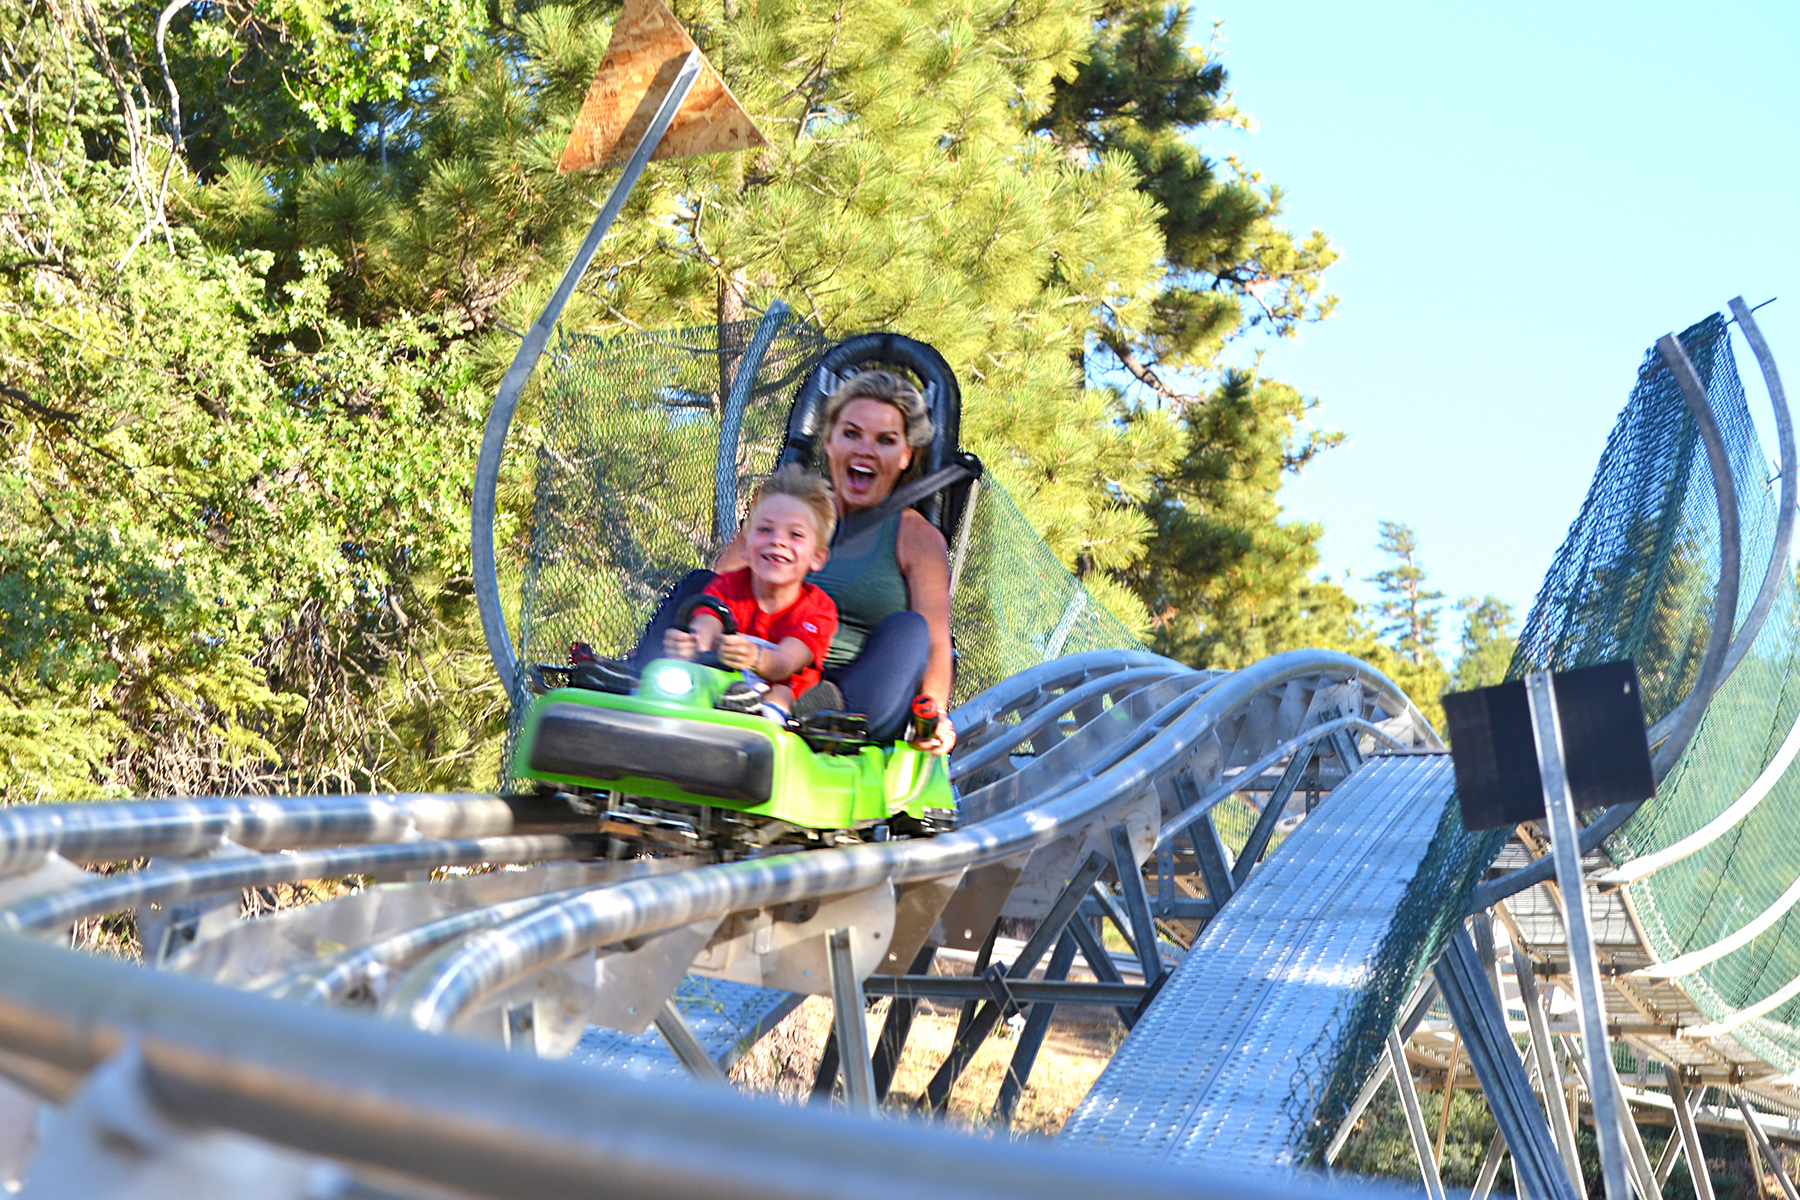 Letter To The Editor Canyon Coaster Park Looks For Transparency With Community Williams Grand Canyon News Williams Grand Canyon Az